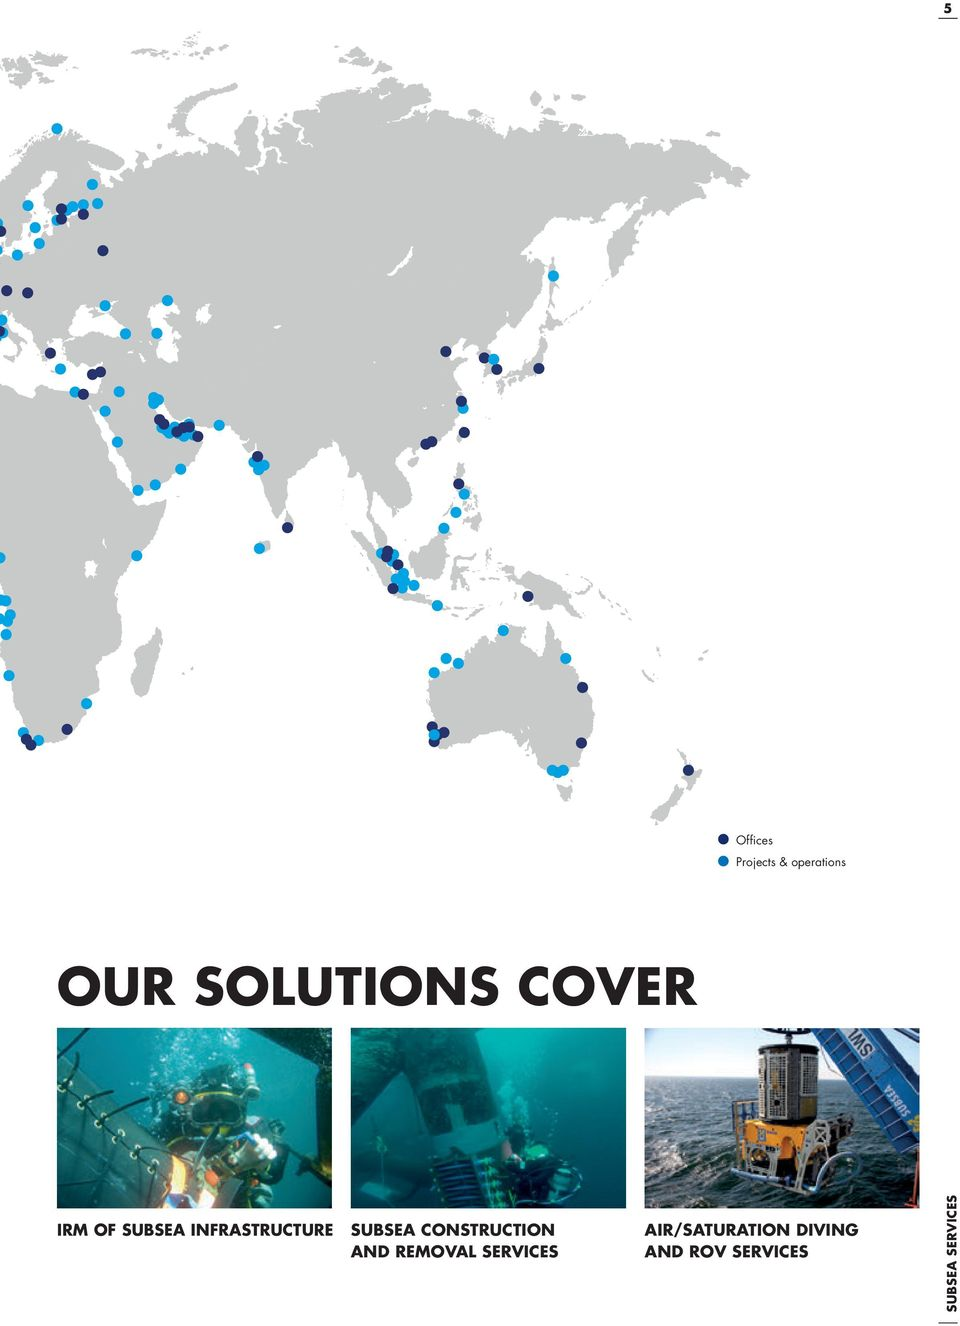 INFRASTRUCTURE SUBSEA CONSTRUCTION AND